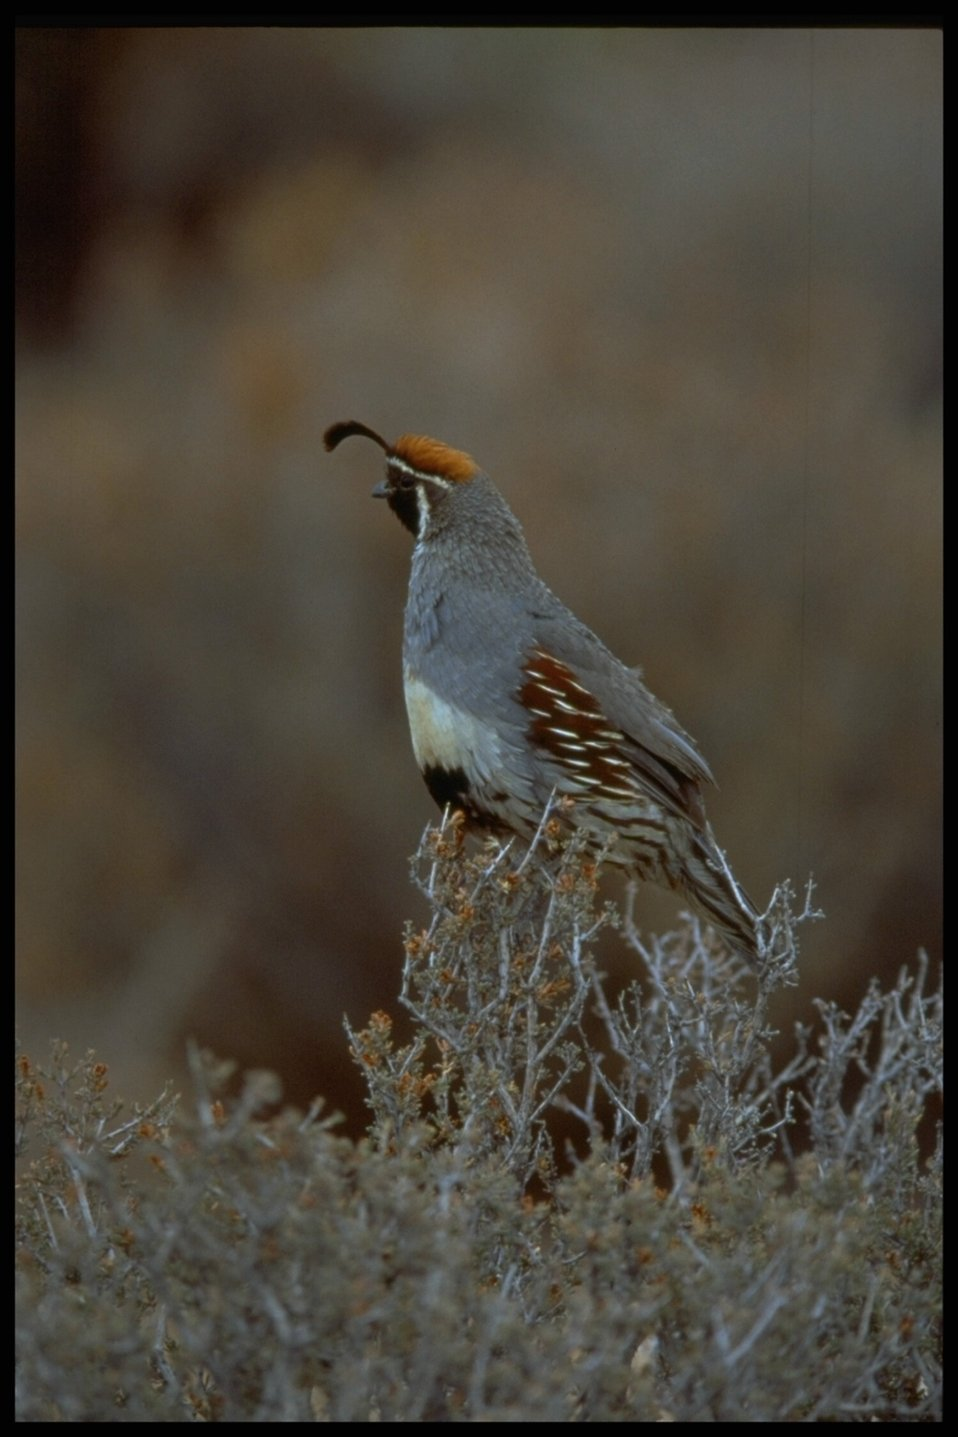 Quail on watch!  He is sitting on a bush found at the Parashant National Monument.